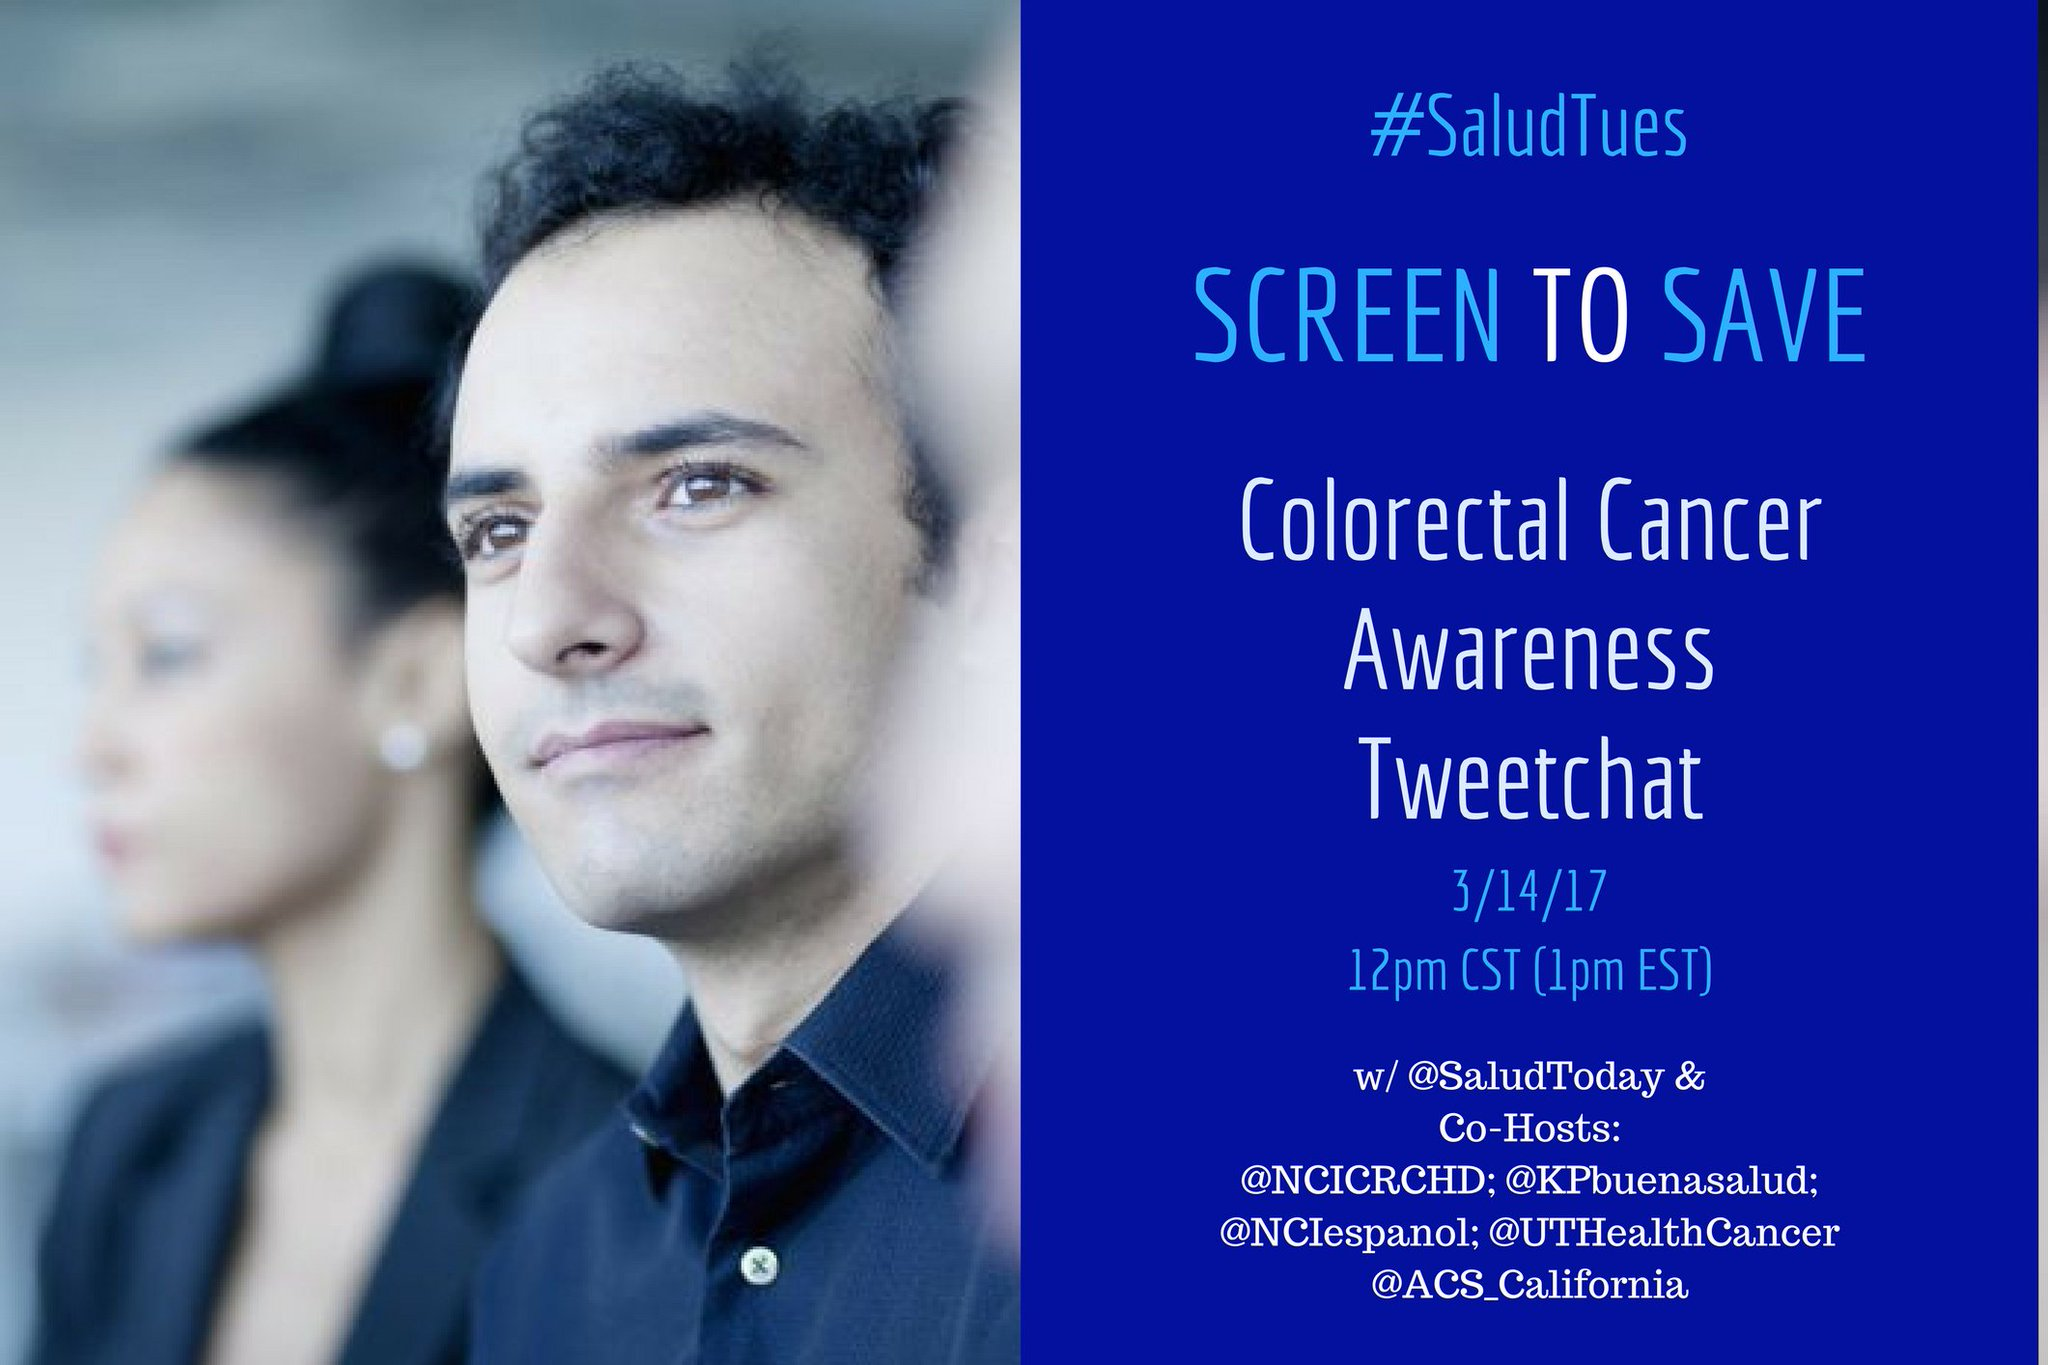 Thumbnail for Screen to Save Colorectal Cancer Awareness Tweetchat